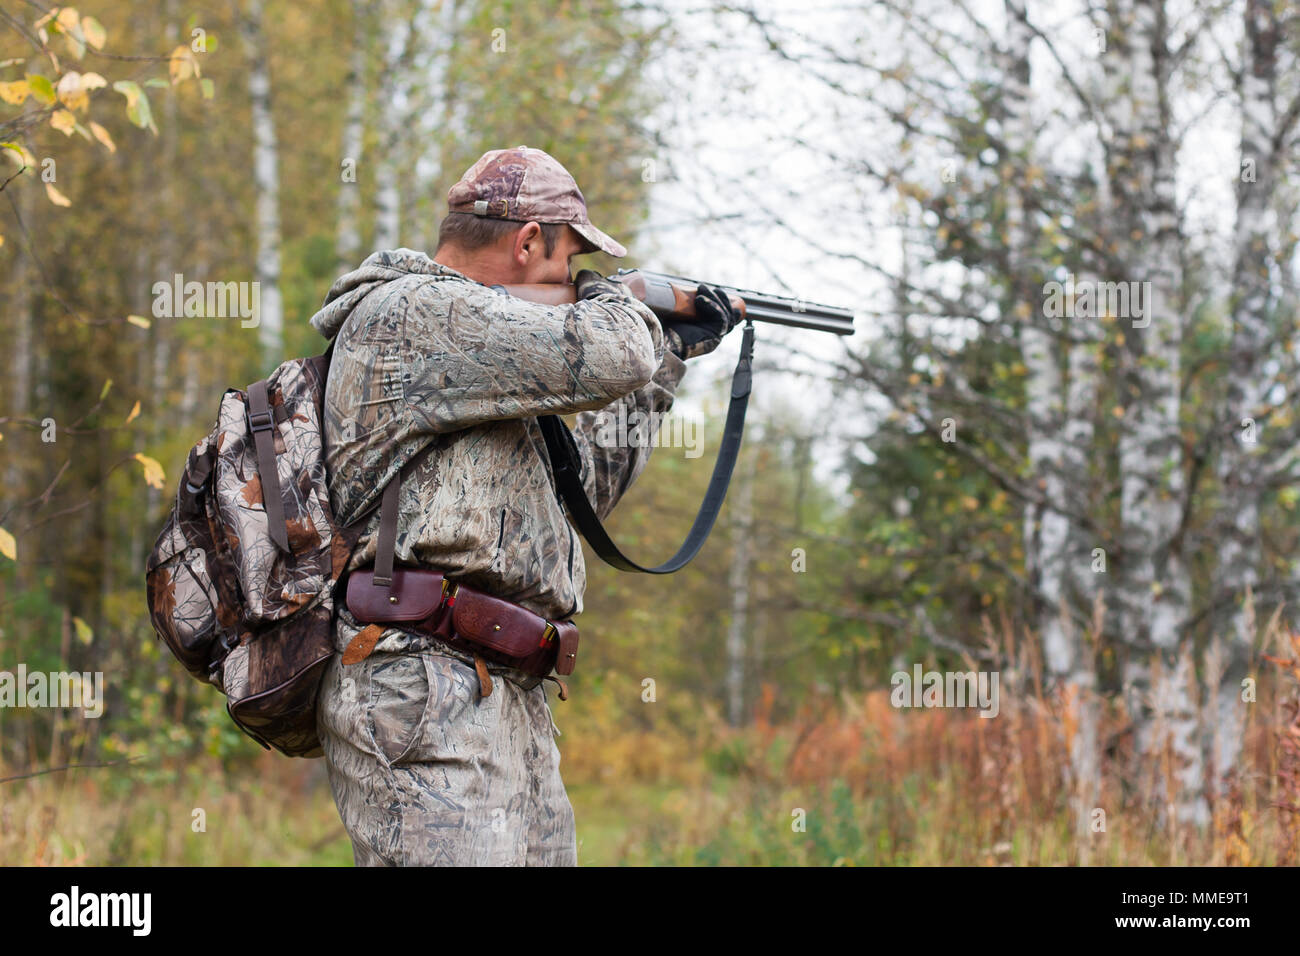 hunter in camouflage taking aim from a hunting gun in the wildfowl - Stock Image